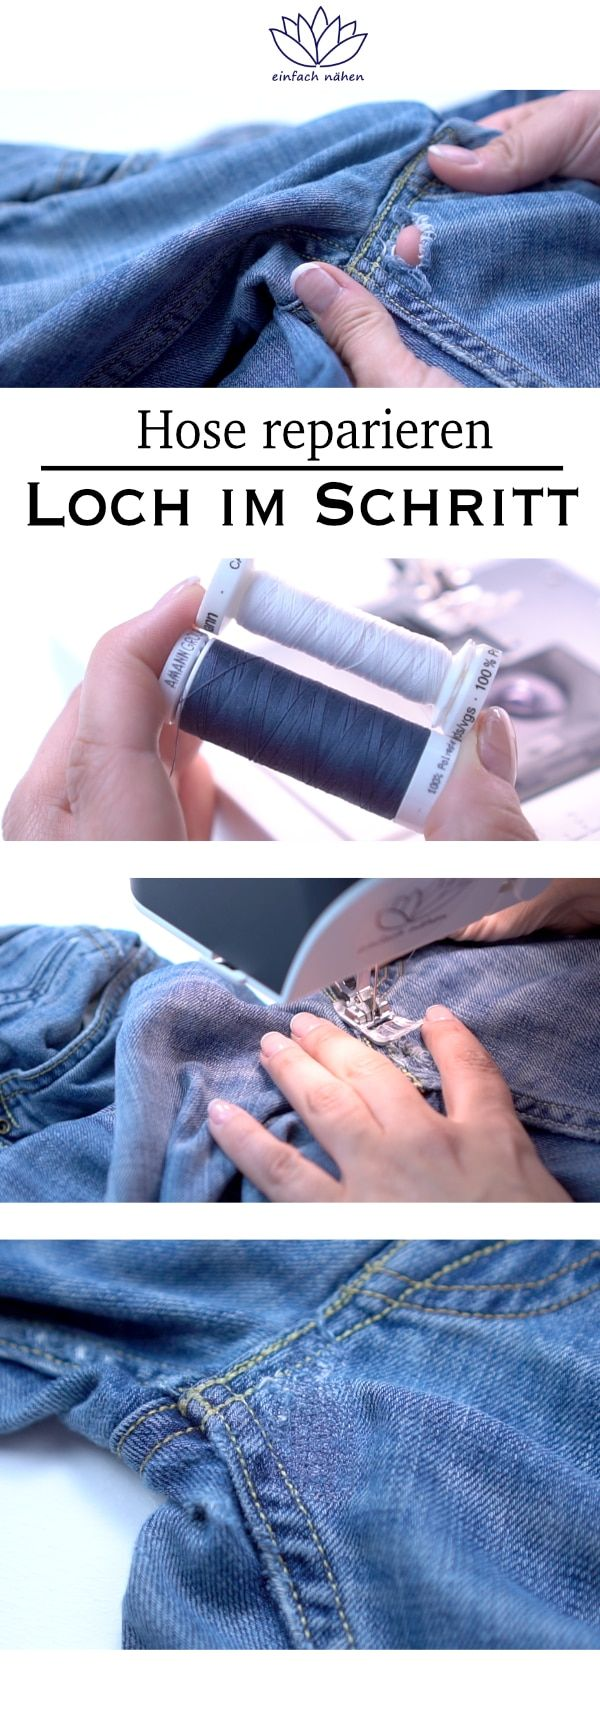 Repair pants in crotch | easy to learn how to sew - tips and tricks for sewing ...